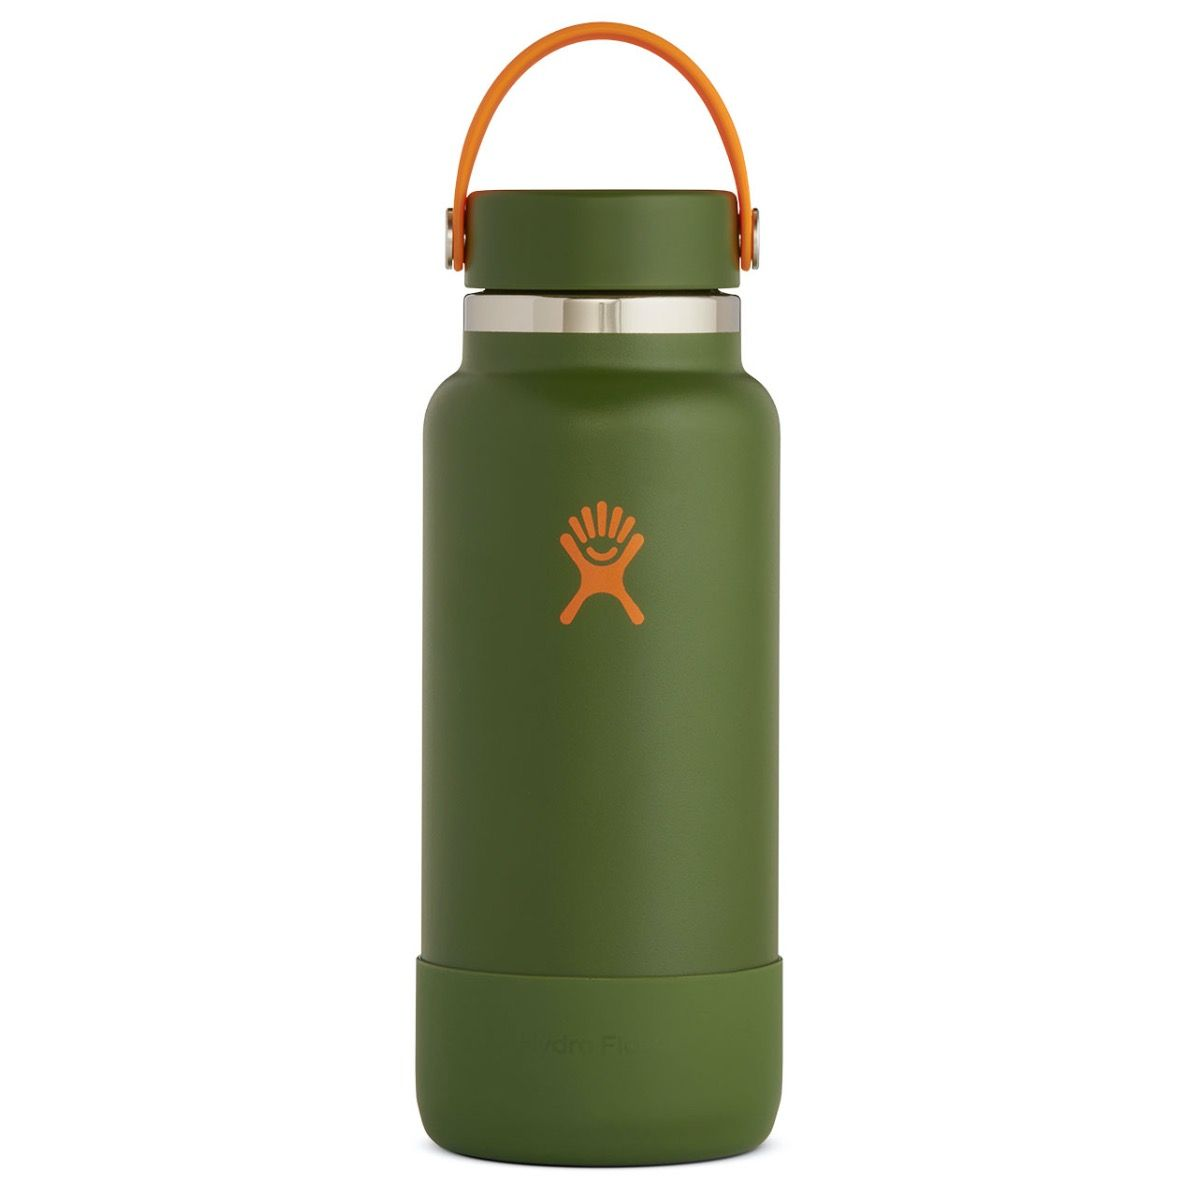 tree green water bottle with orange hydro flask logo